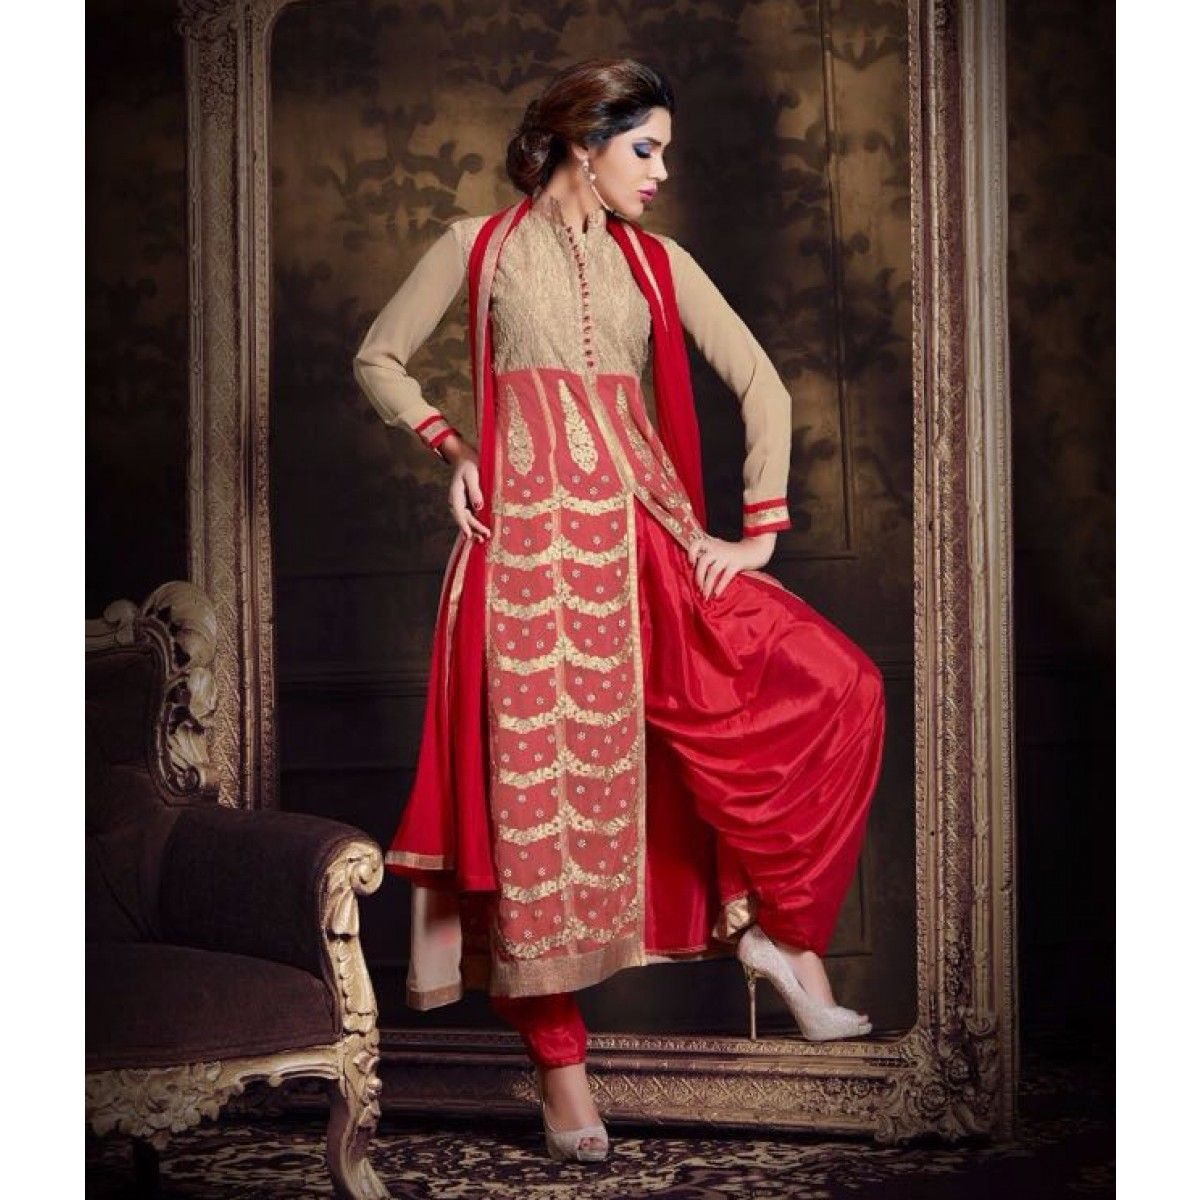 Buy Red Georgette Front Slit Patiala Suit for womens online India, Best Prices, Reviews - Peachmode